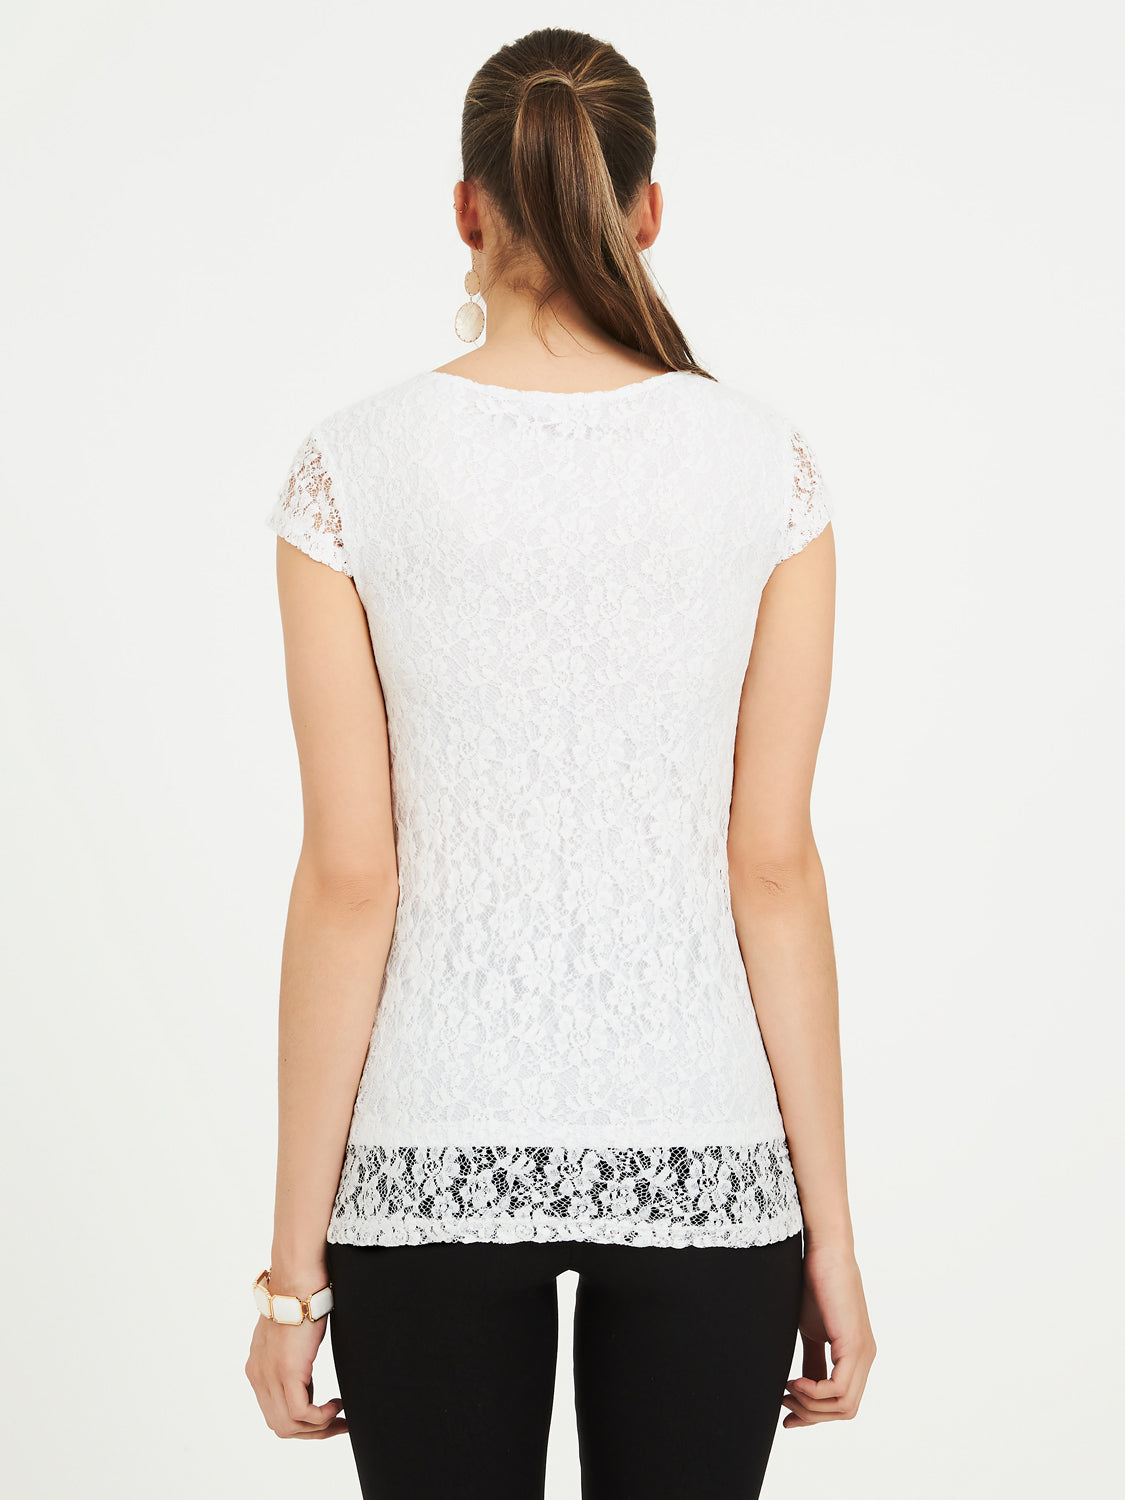 Scoop Neck Lace Cap Sleeve Tee